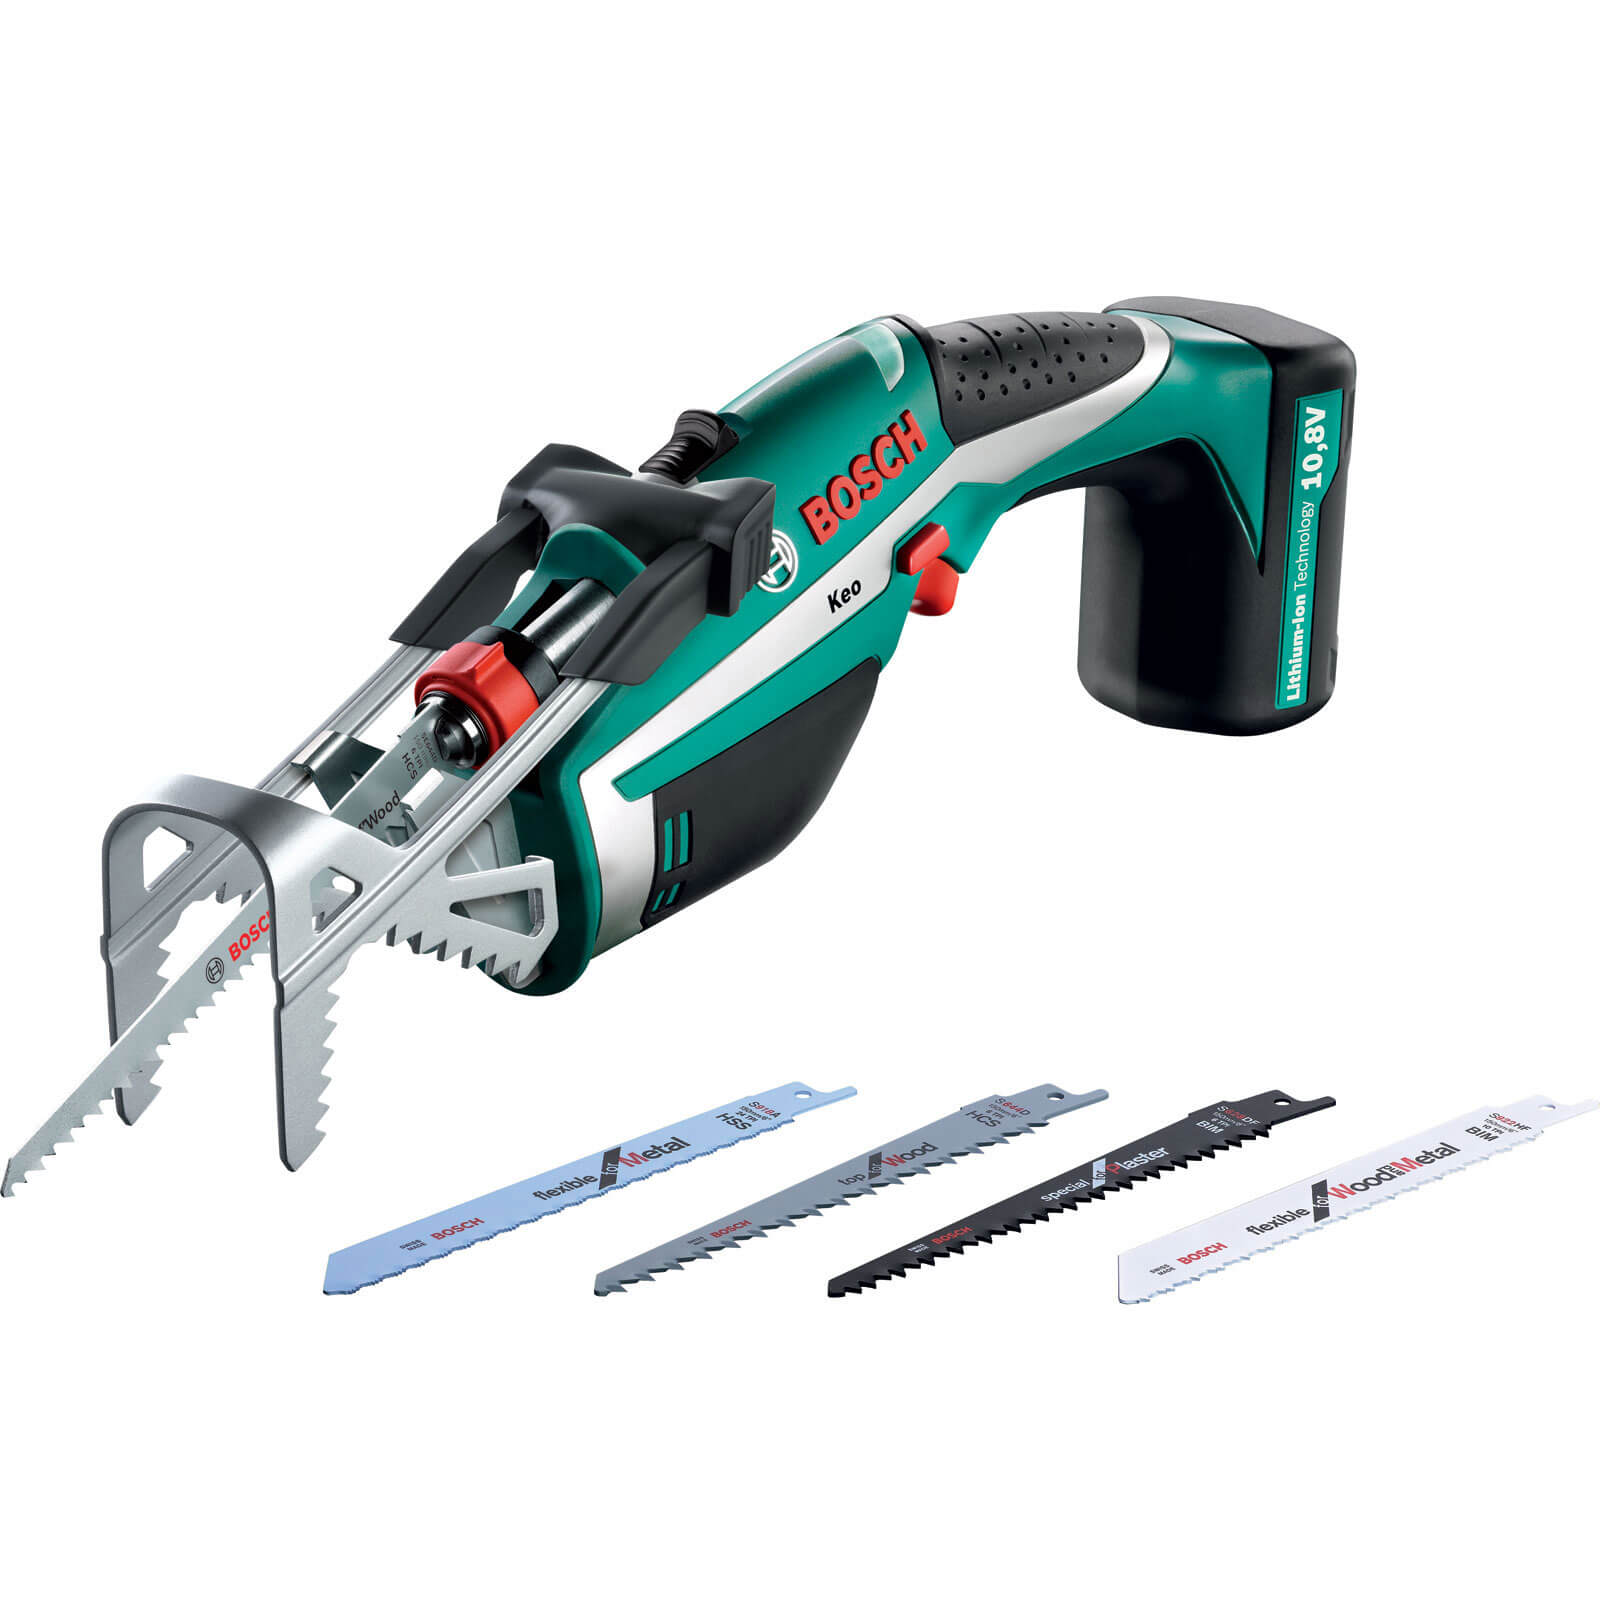 Bosch KEO 10.8v Cordless Reciprocating Garden Pruning Kit Saw with Integral Lithium Ion Battery 1.3ah